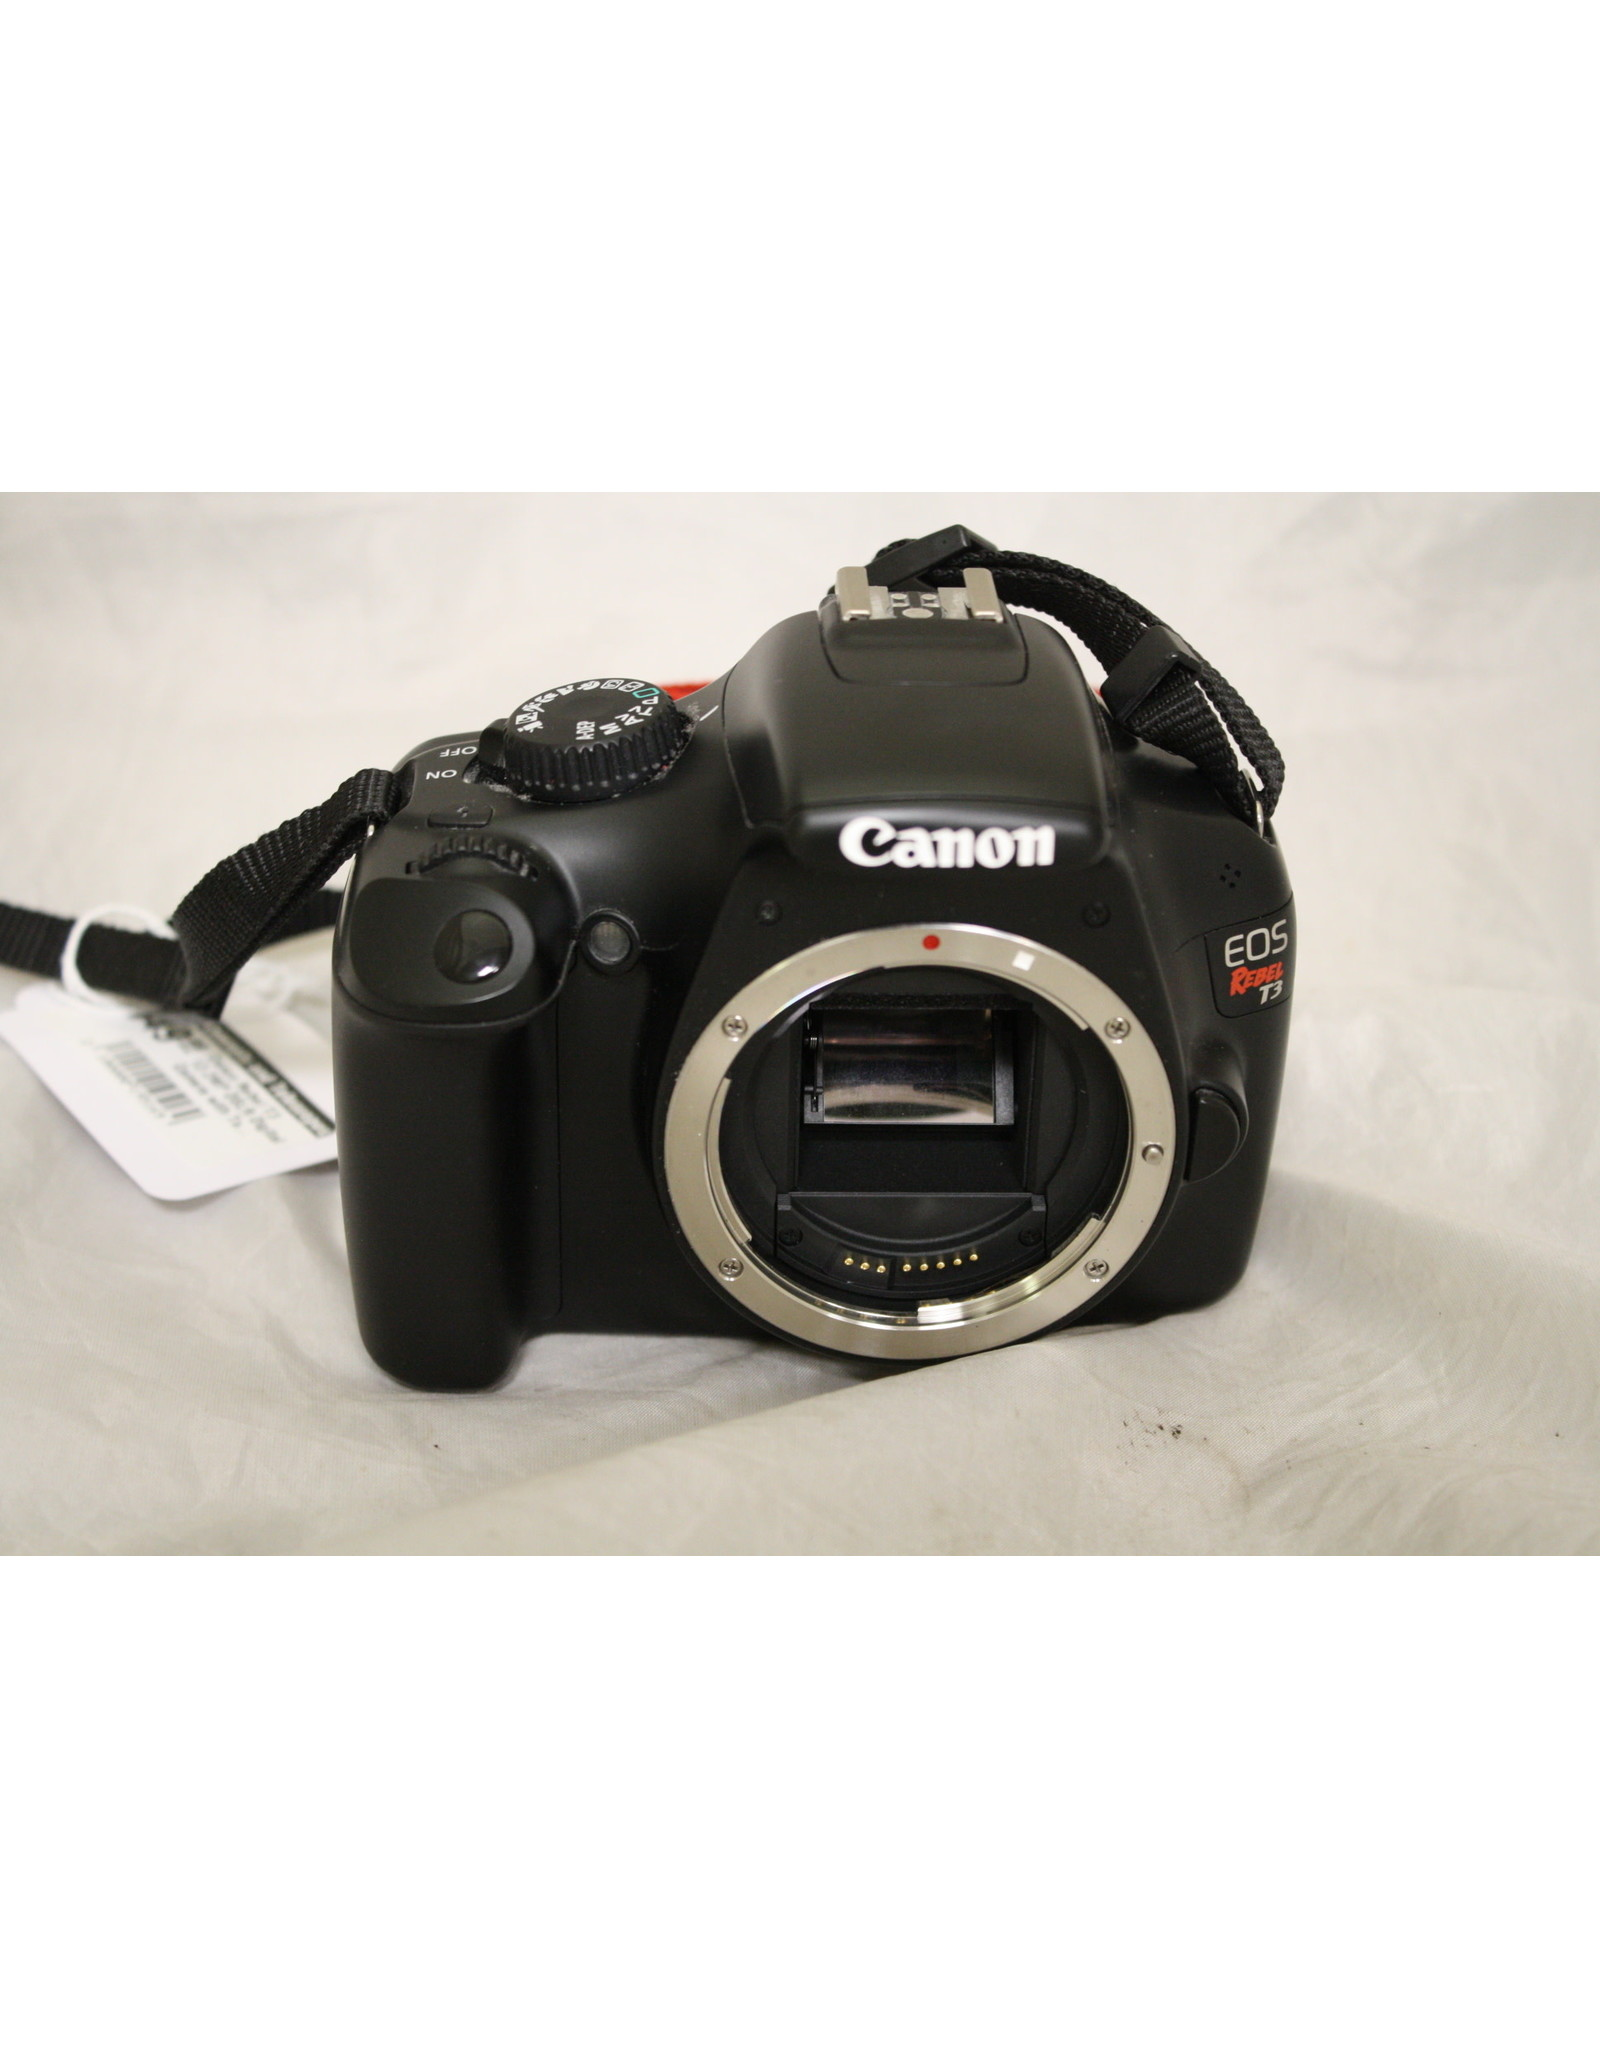 Canon Canon Rebel T3 12.2MP DSLR Digital Camera with Tamron 18-200mm Lens and Case